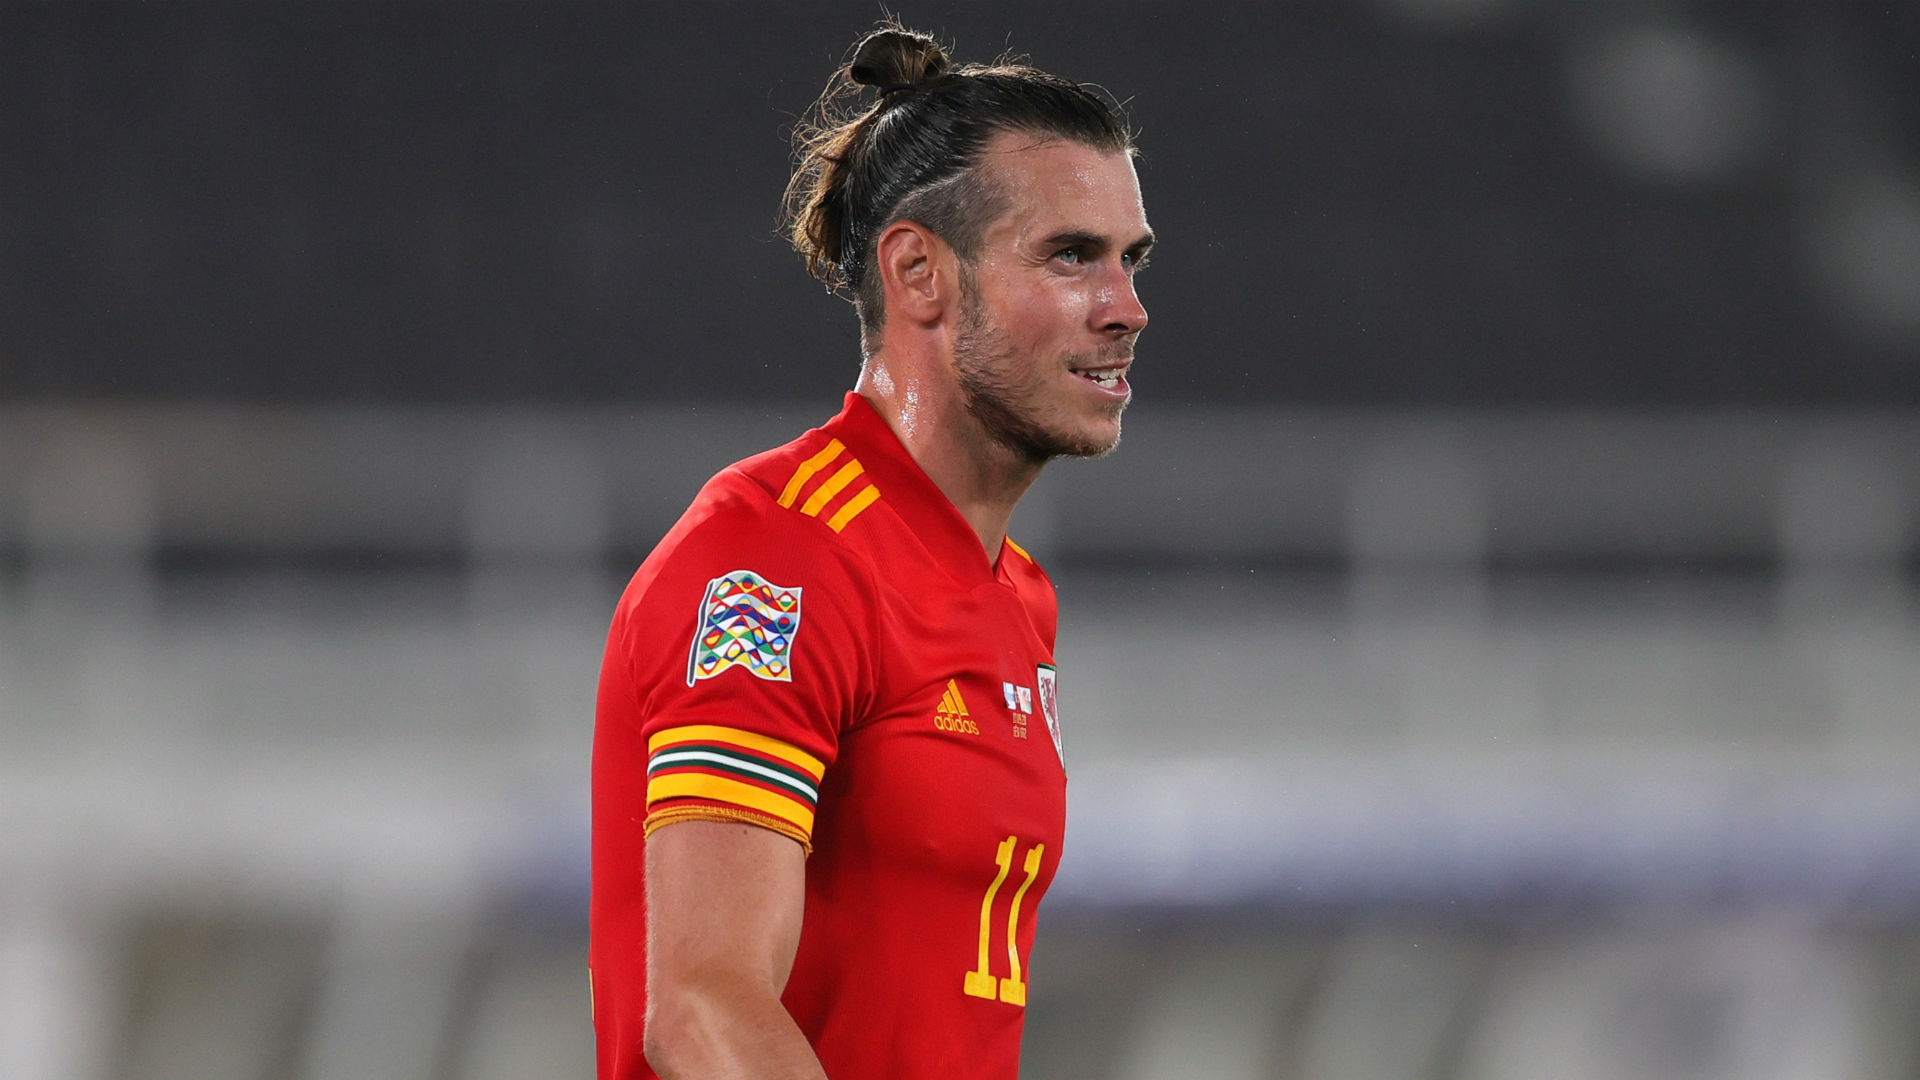 Bale - Real Madrid making exit 'very difficult', open to Premier League return